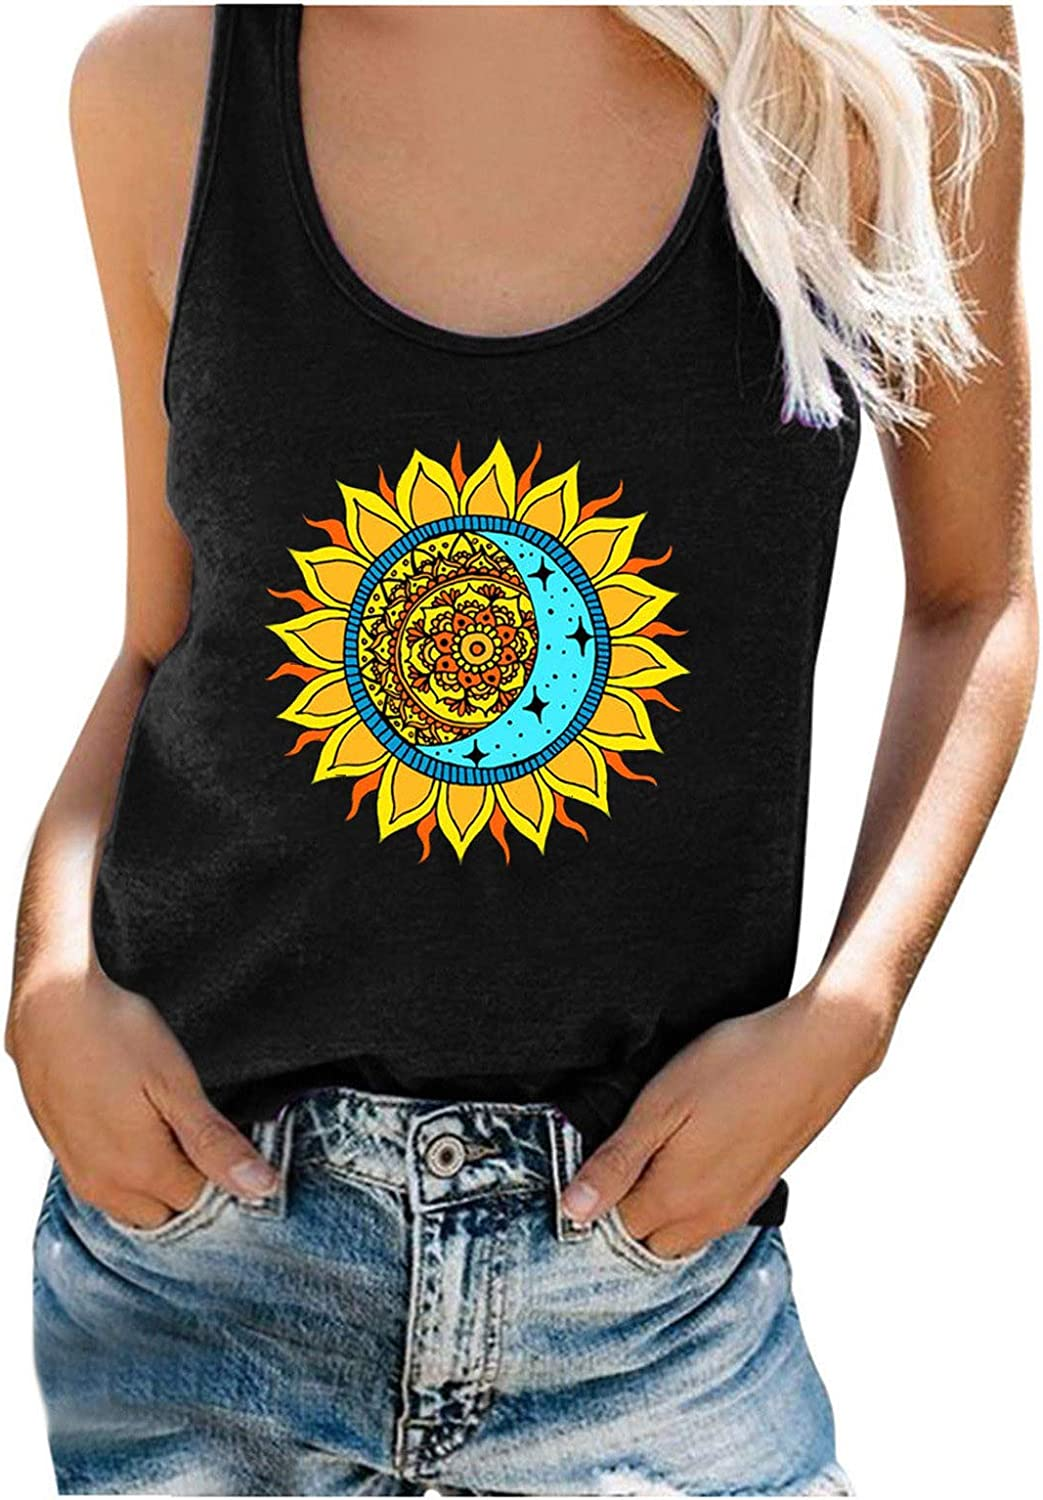 Women's Sleeveless Shirts Summer Workout Tops Moon and Sun Graphic Print Tee Shirts Crew Neck Cami Vest Blouse for Women